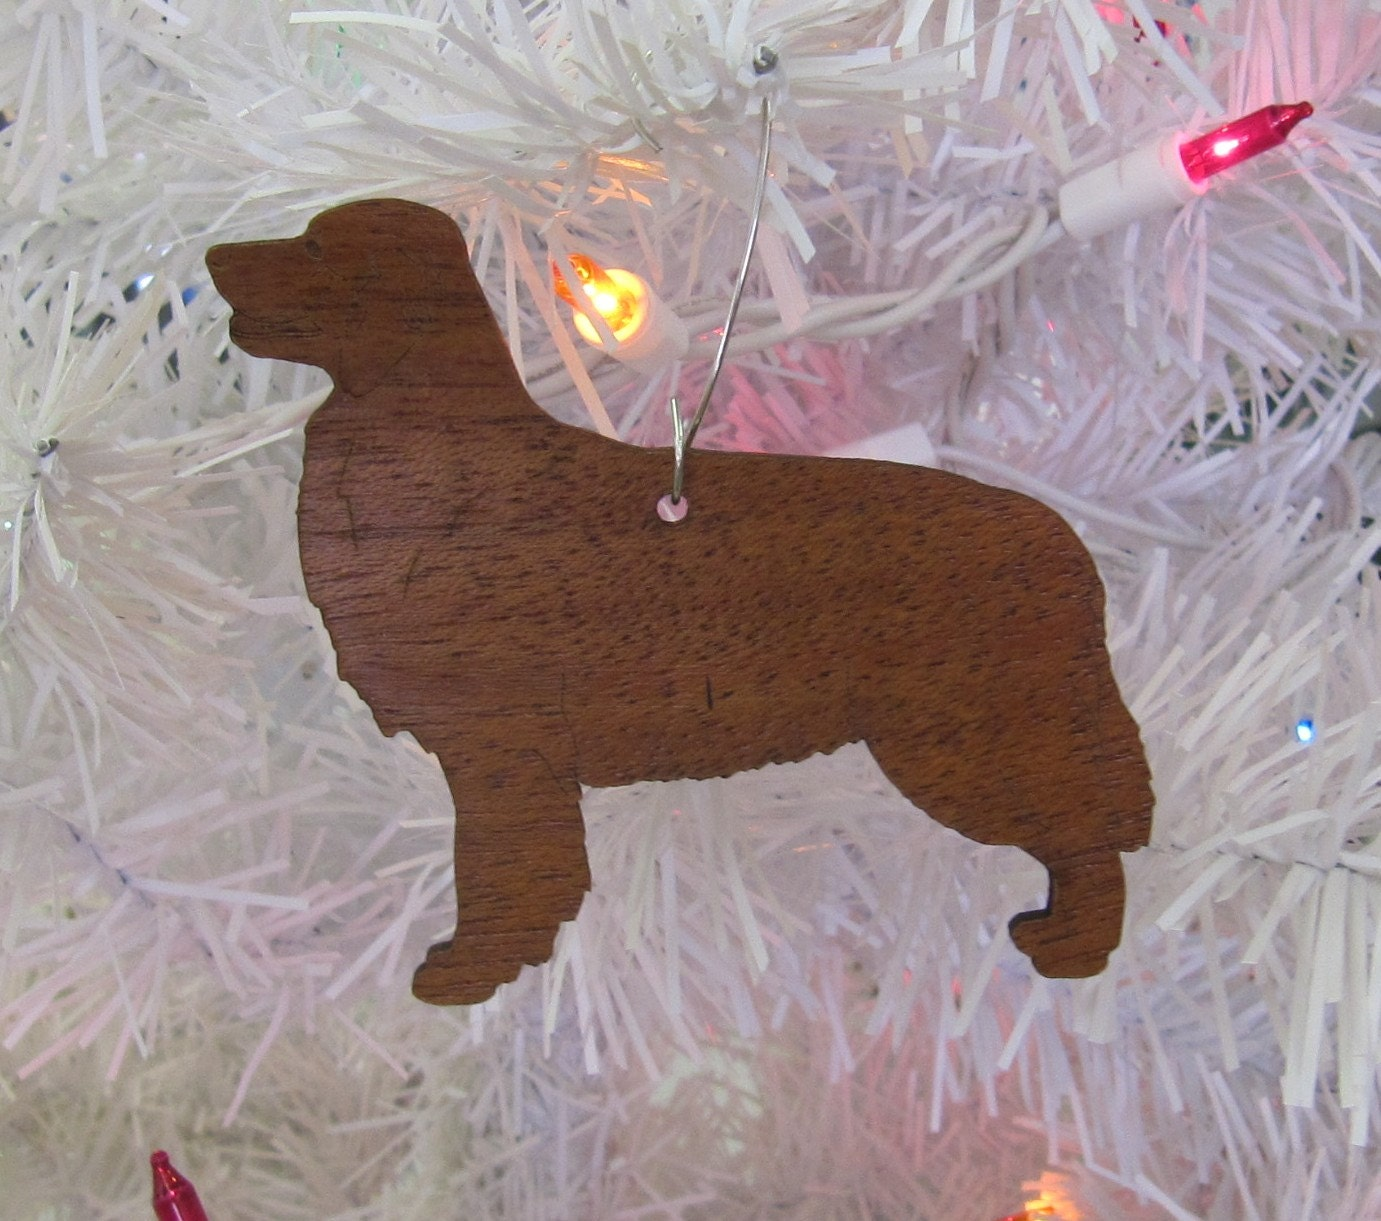 Golden Retriever Ornament in Wood or Mirror Acrylic Customizable with Name